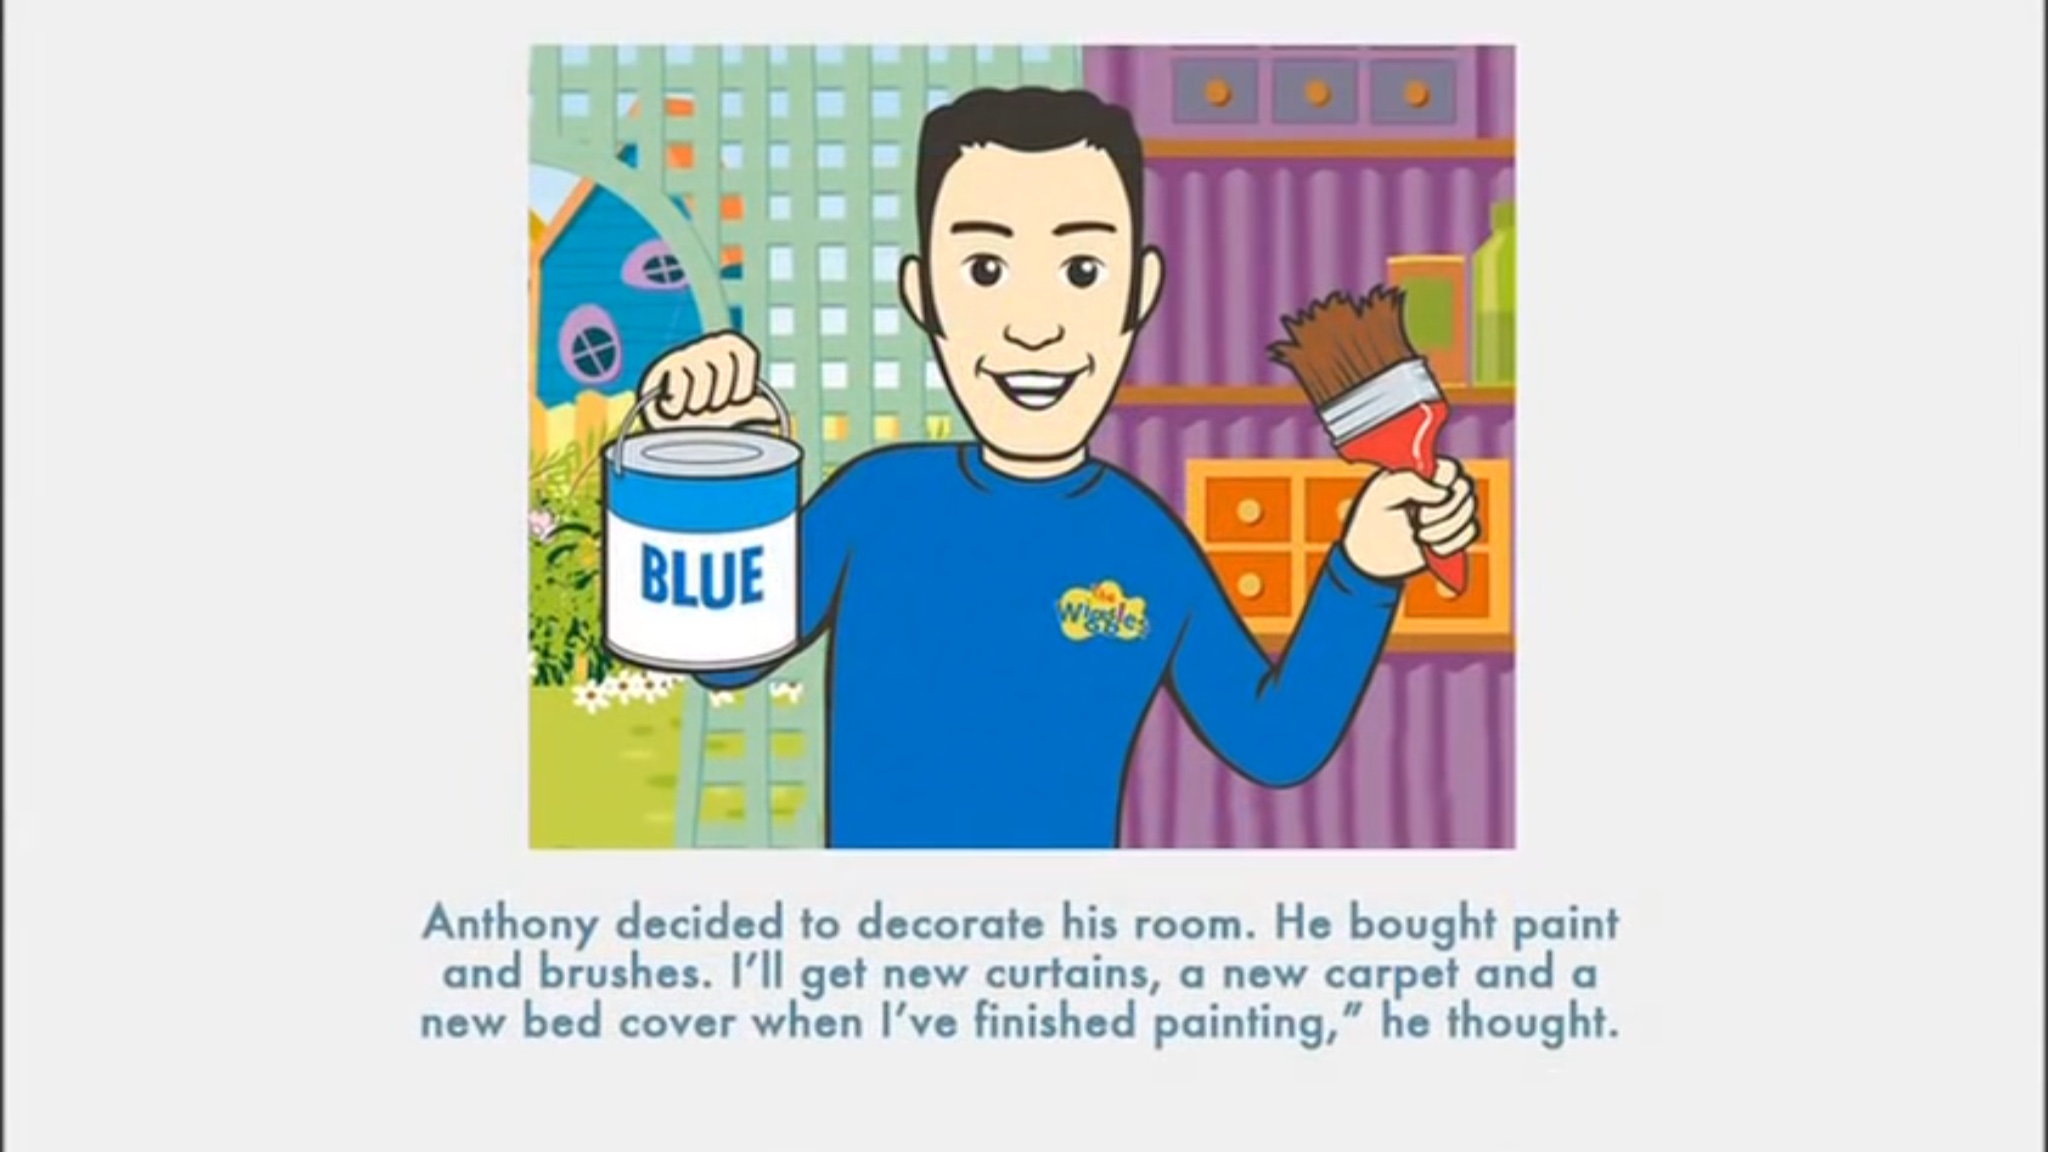 Anthony is Blue